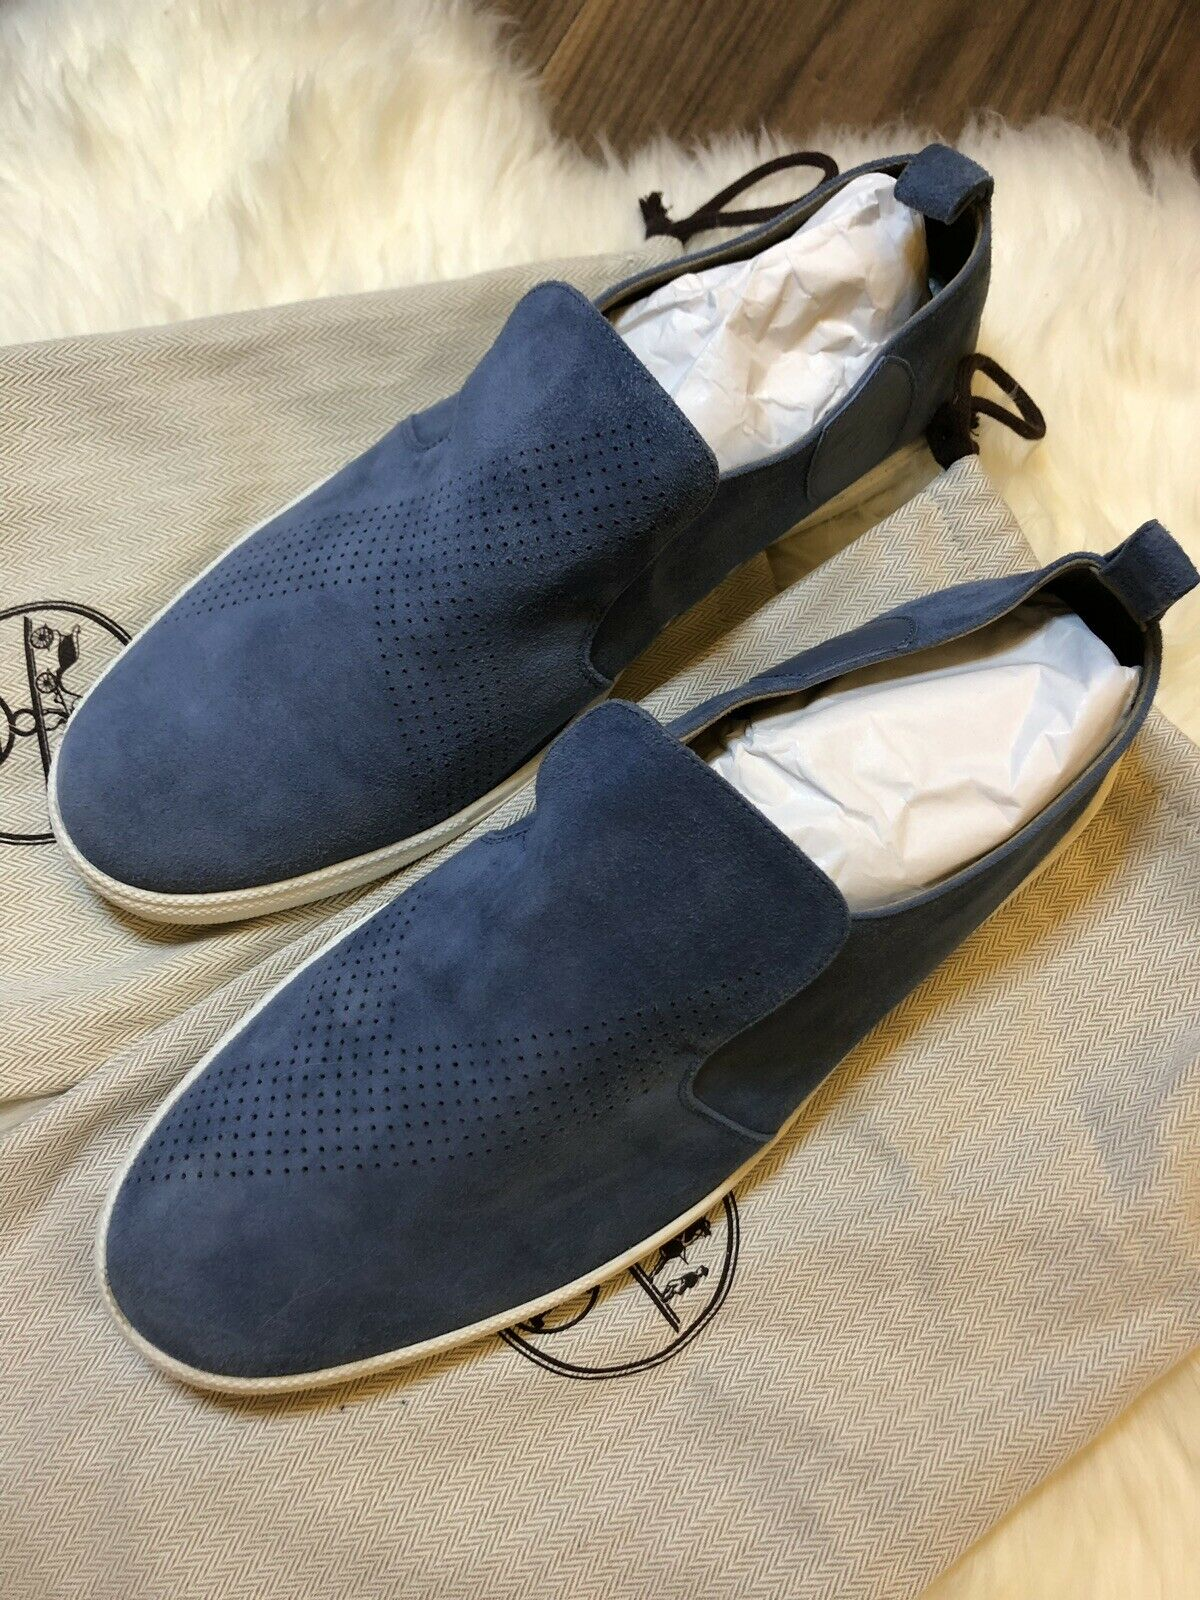 99% NEUF Hermes bleu SUEDE MOCASSIN TAILLE 43